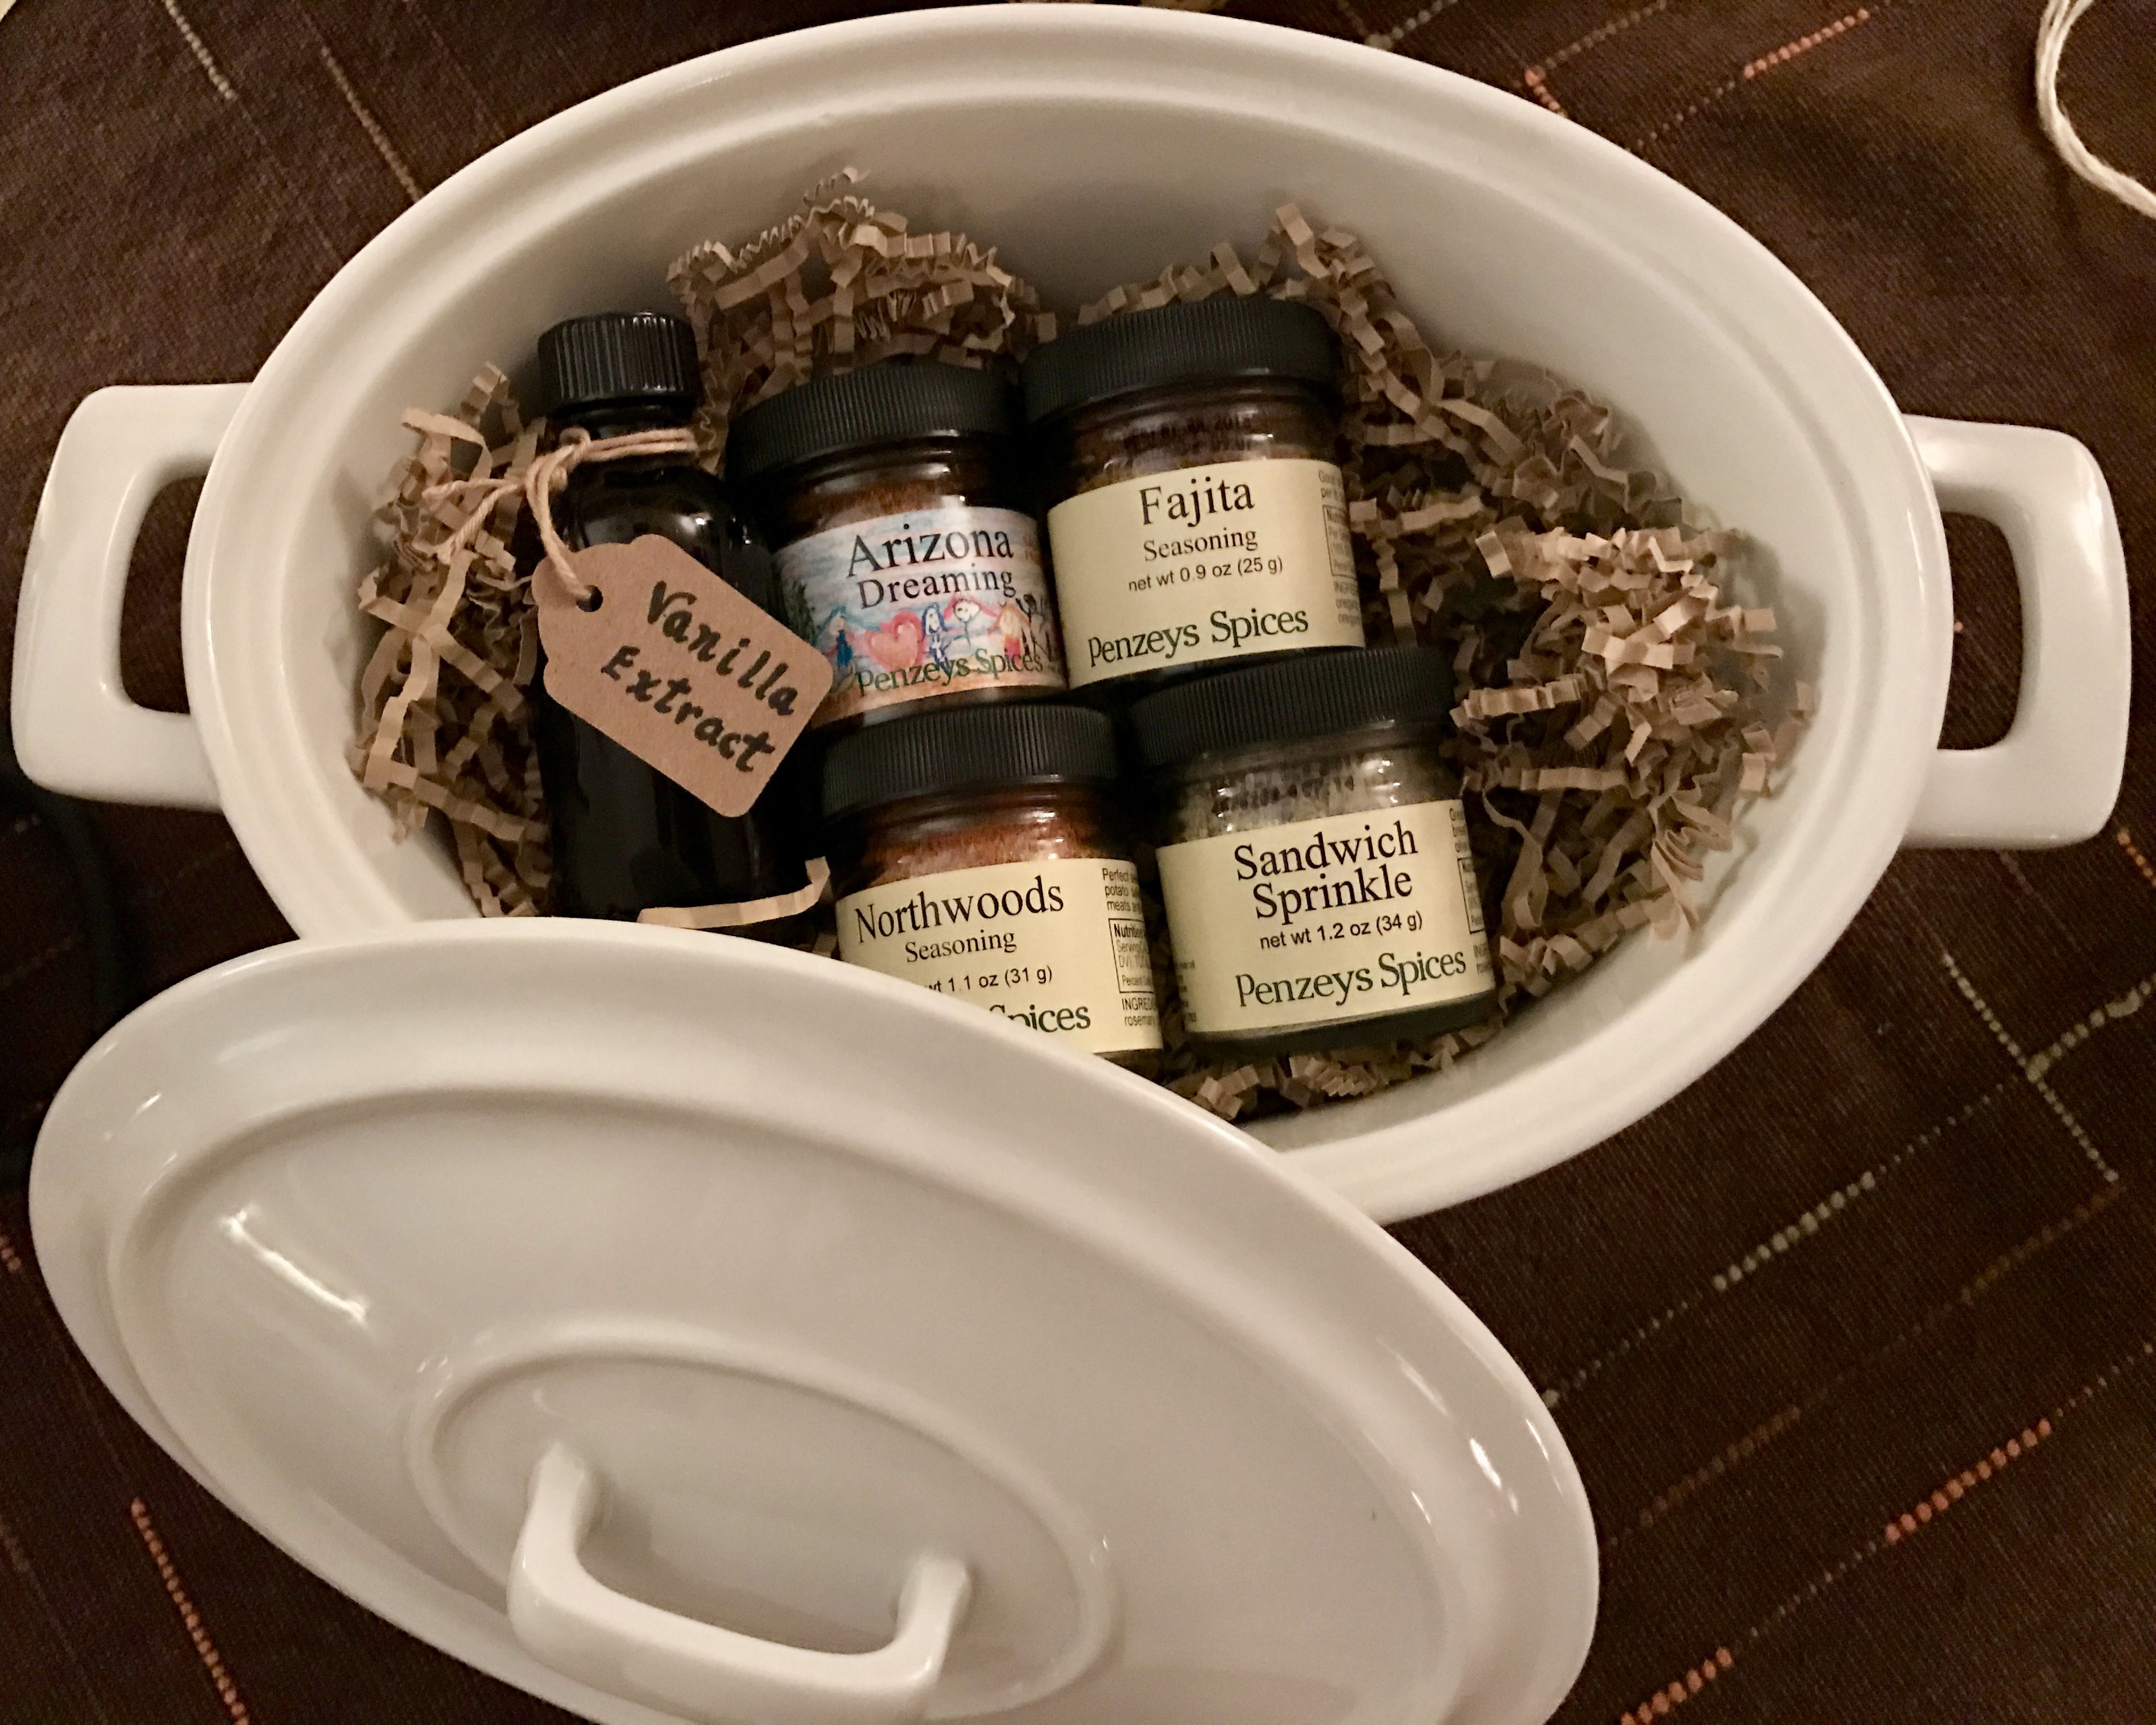 Bottled spices and homemade vanilla extract in a dish for creative gift given for a cook